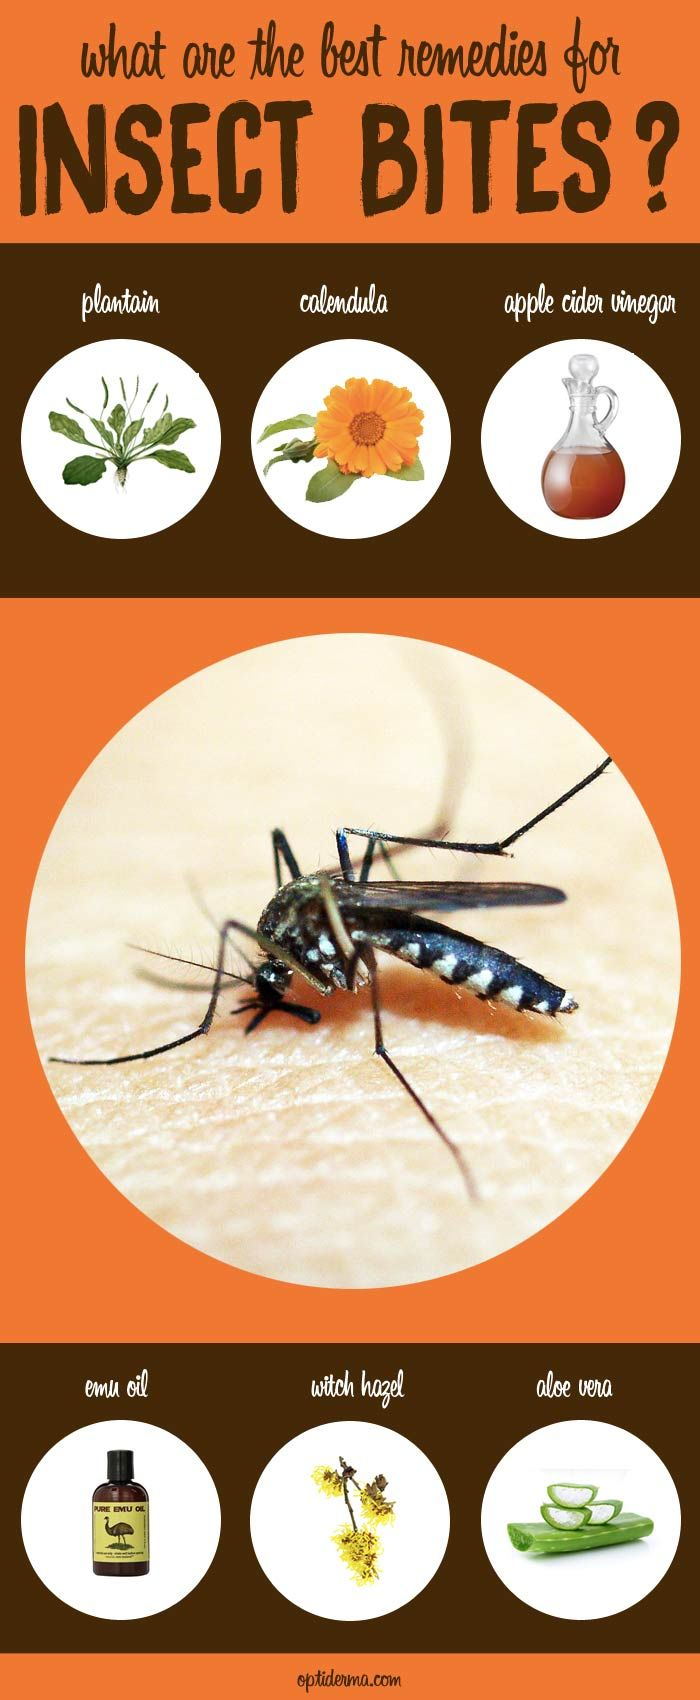 What are the Best Remedies for Insect Bites? Learn about